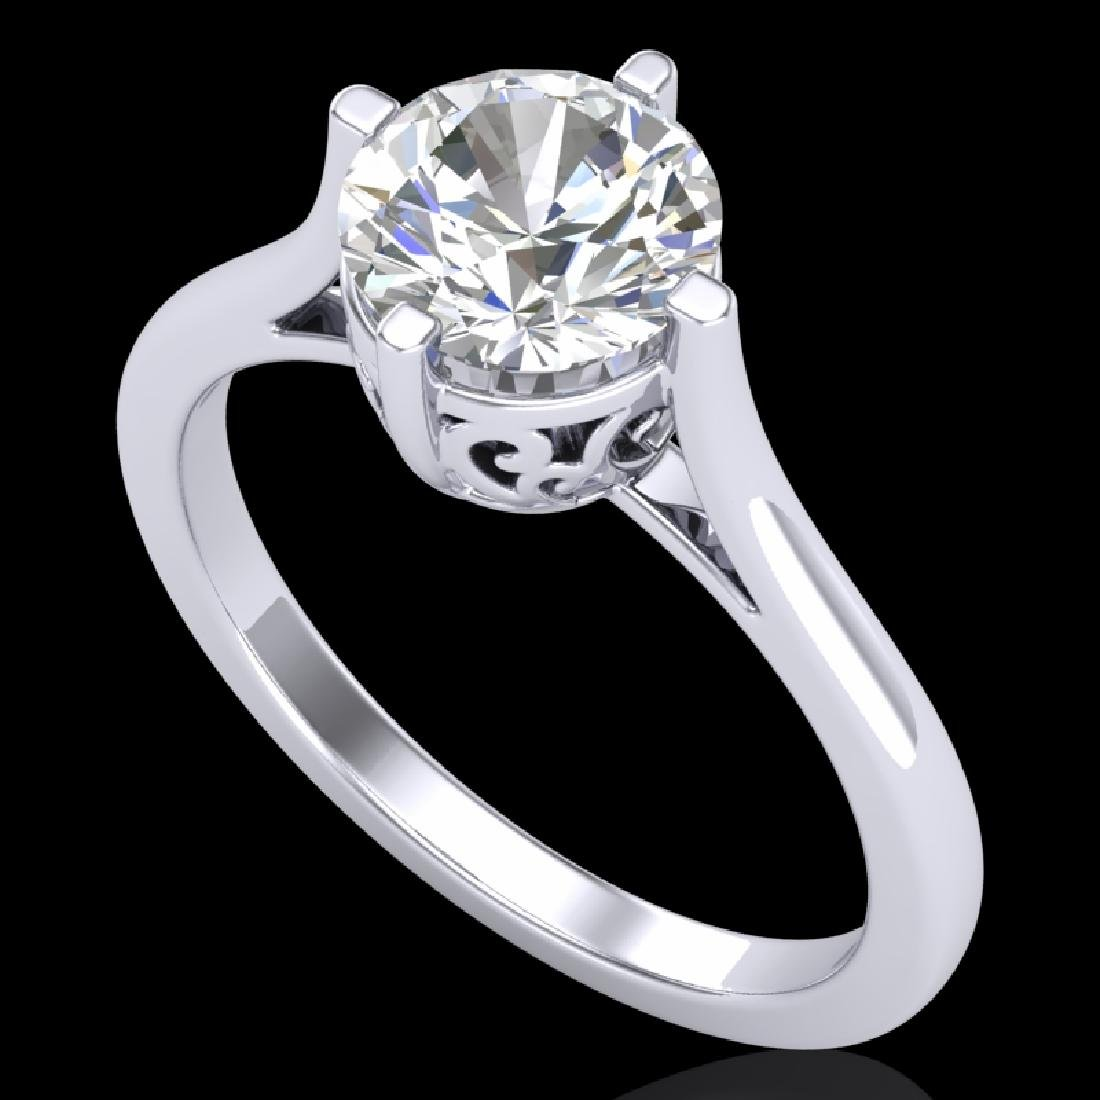 1.25 CTW VS/SI Diamond Solitaire Art Deco Ring 18K